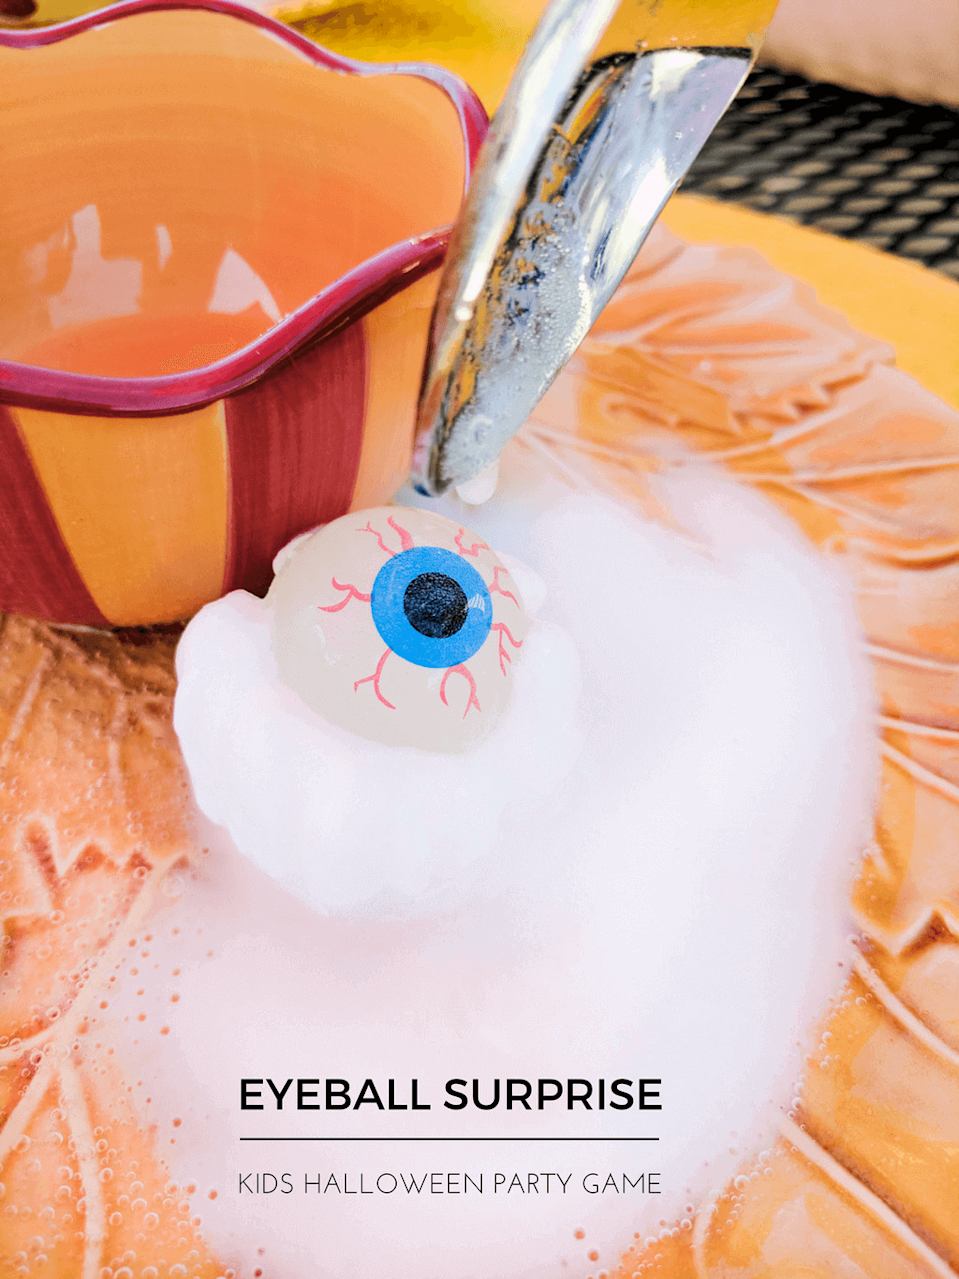 """<p>If there's anything better than a fun Halloween game, it's one that doubles as a <a href=""""https://www.goodhousekeeping.com/life/parenting/g32176446/science-experiments-for-kids/"""" rel=""""nofollow noopener"""" target=""""_blank"""" data-ylk=""""slk:cool science experiment"""" class=""""link rapid-noclick-resp"""">cool science experiment</a>! This one calls for kids spooning vinegar on top of a bouncy ball frozen in baking soda and water — then watching it reveal a spooky eyeball surprise.</p><p><em><a href=""""https://www.merrimentdesign.com/fun-kids-halloween-party-game-eyeball-surprise.php"""" rel=""""nofollow noopener"""" target=""""_blank"""" data-ylk=""""slk:Get the tutorial at Merriment Design »"""" class=""""link rapid-noclick-resp"""">Get the tutorial at Merriment Design »</a></em></p>"""